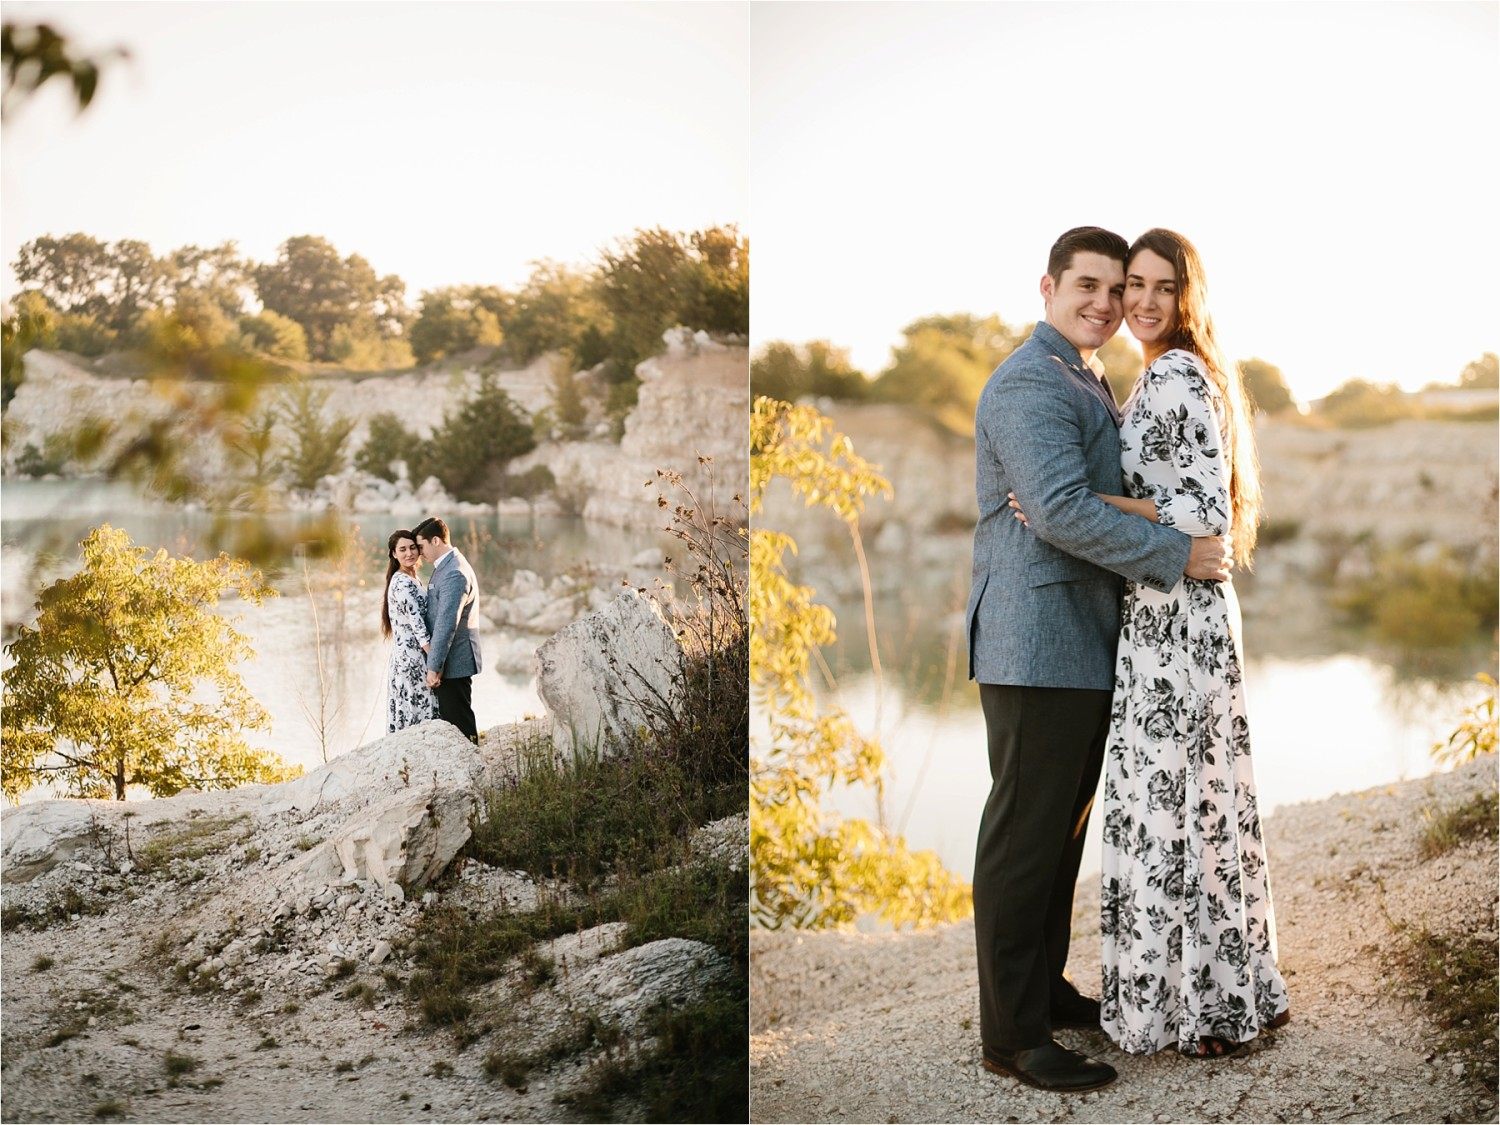 an-intimate-sunrise-session-by-north-texas-wedding-photographer-rachel-meagan-photography-_-26